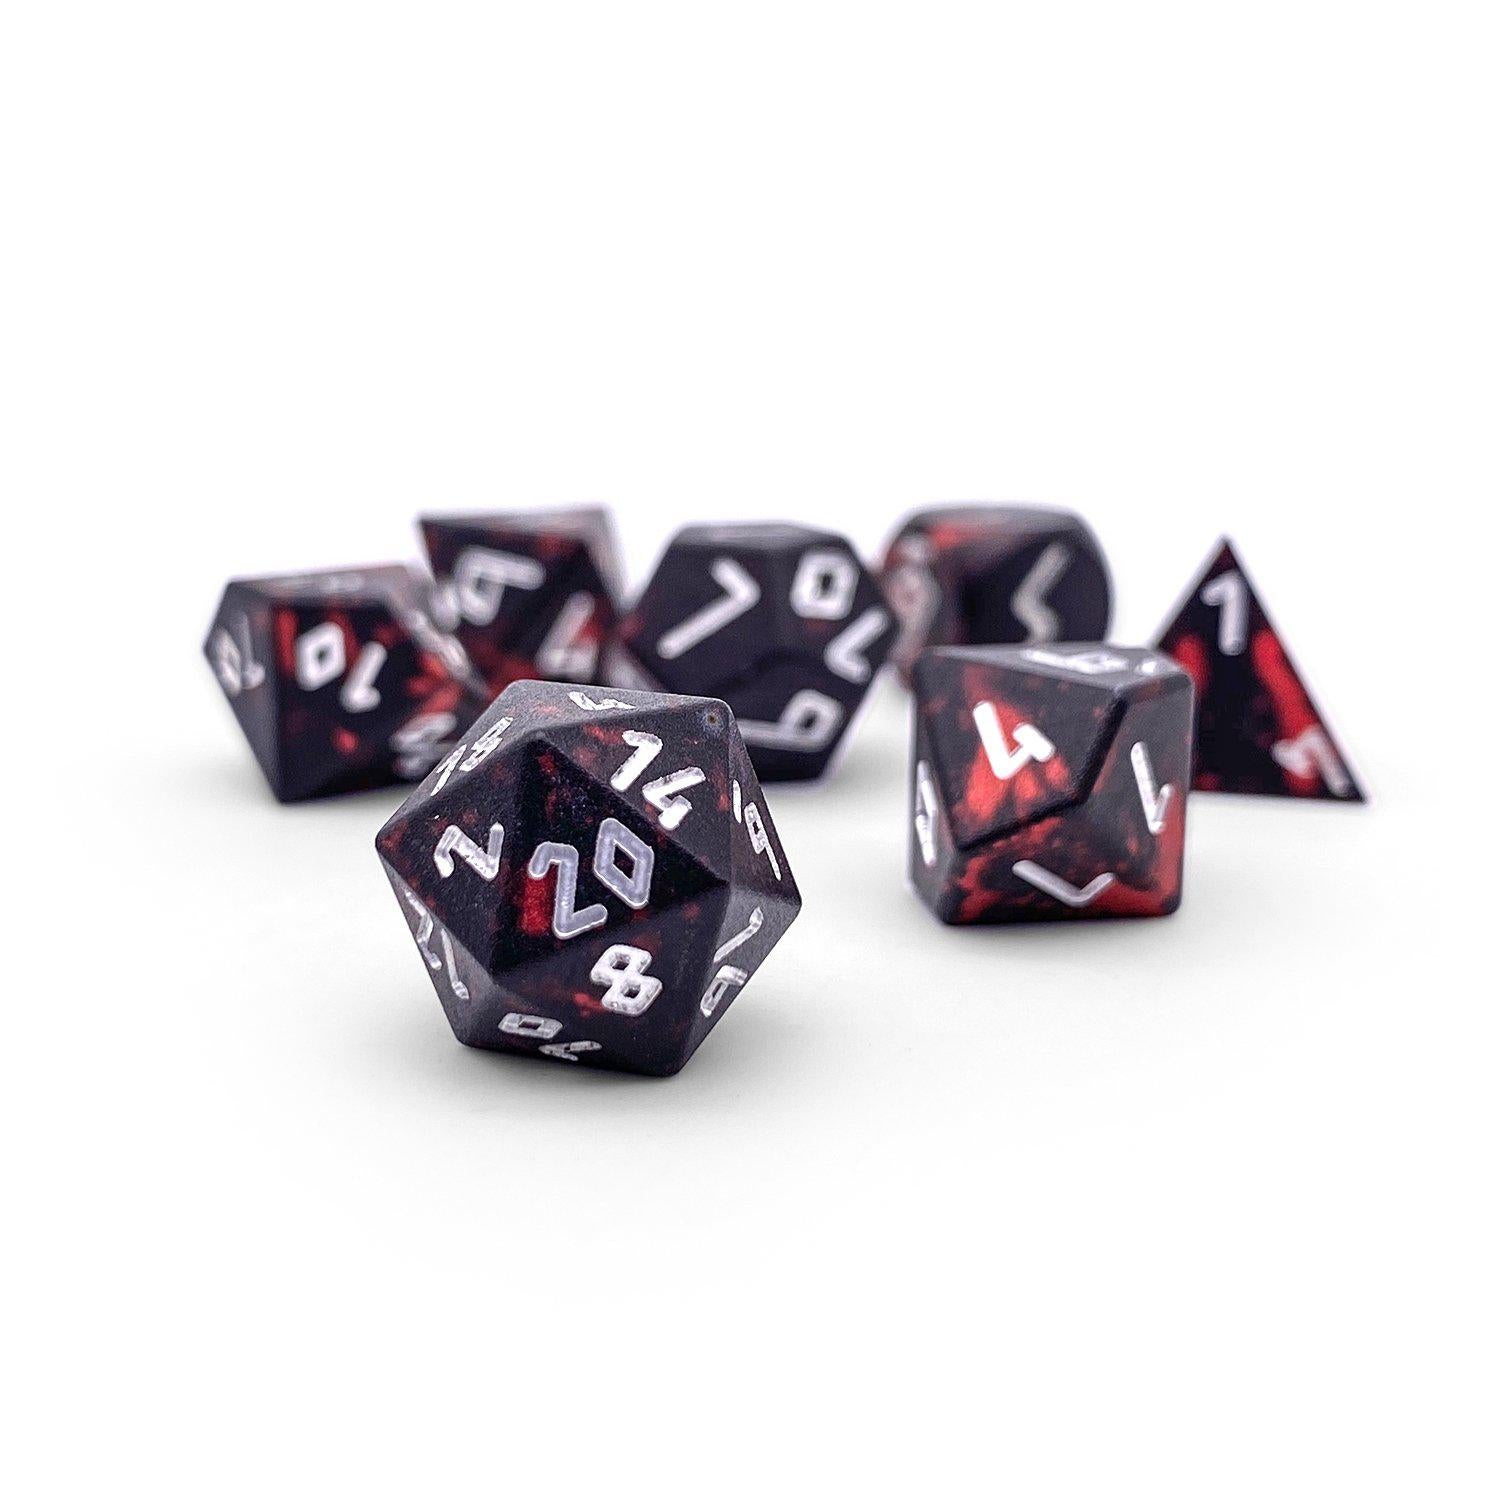 Demons Blood Wondrous Pebble ™ Dice - 10mm 6063 Aircraft Grade Aluminum Mini